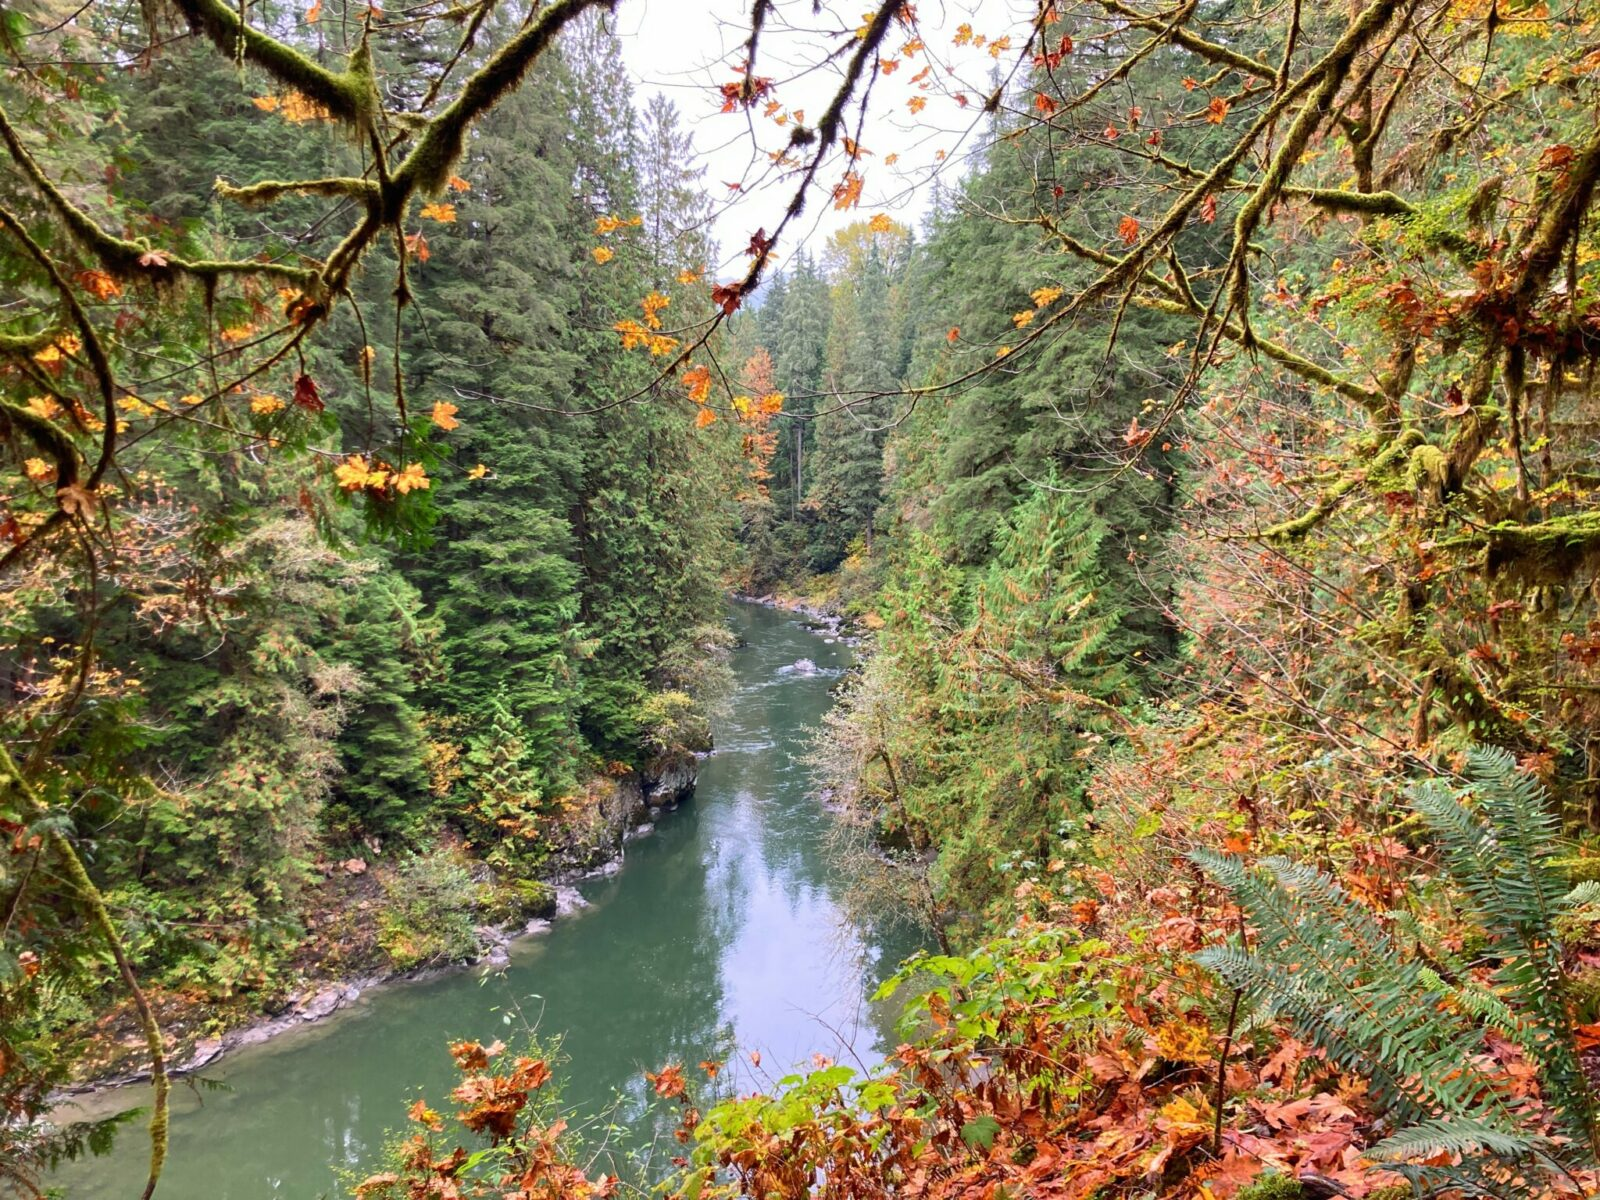 A turquoise river going through an evergreen forest seen from above. There are a few fall leaves from the deciduous trees that have fallen on the ferns near the river.